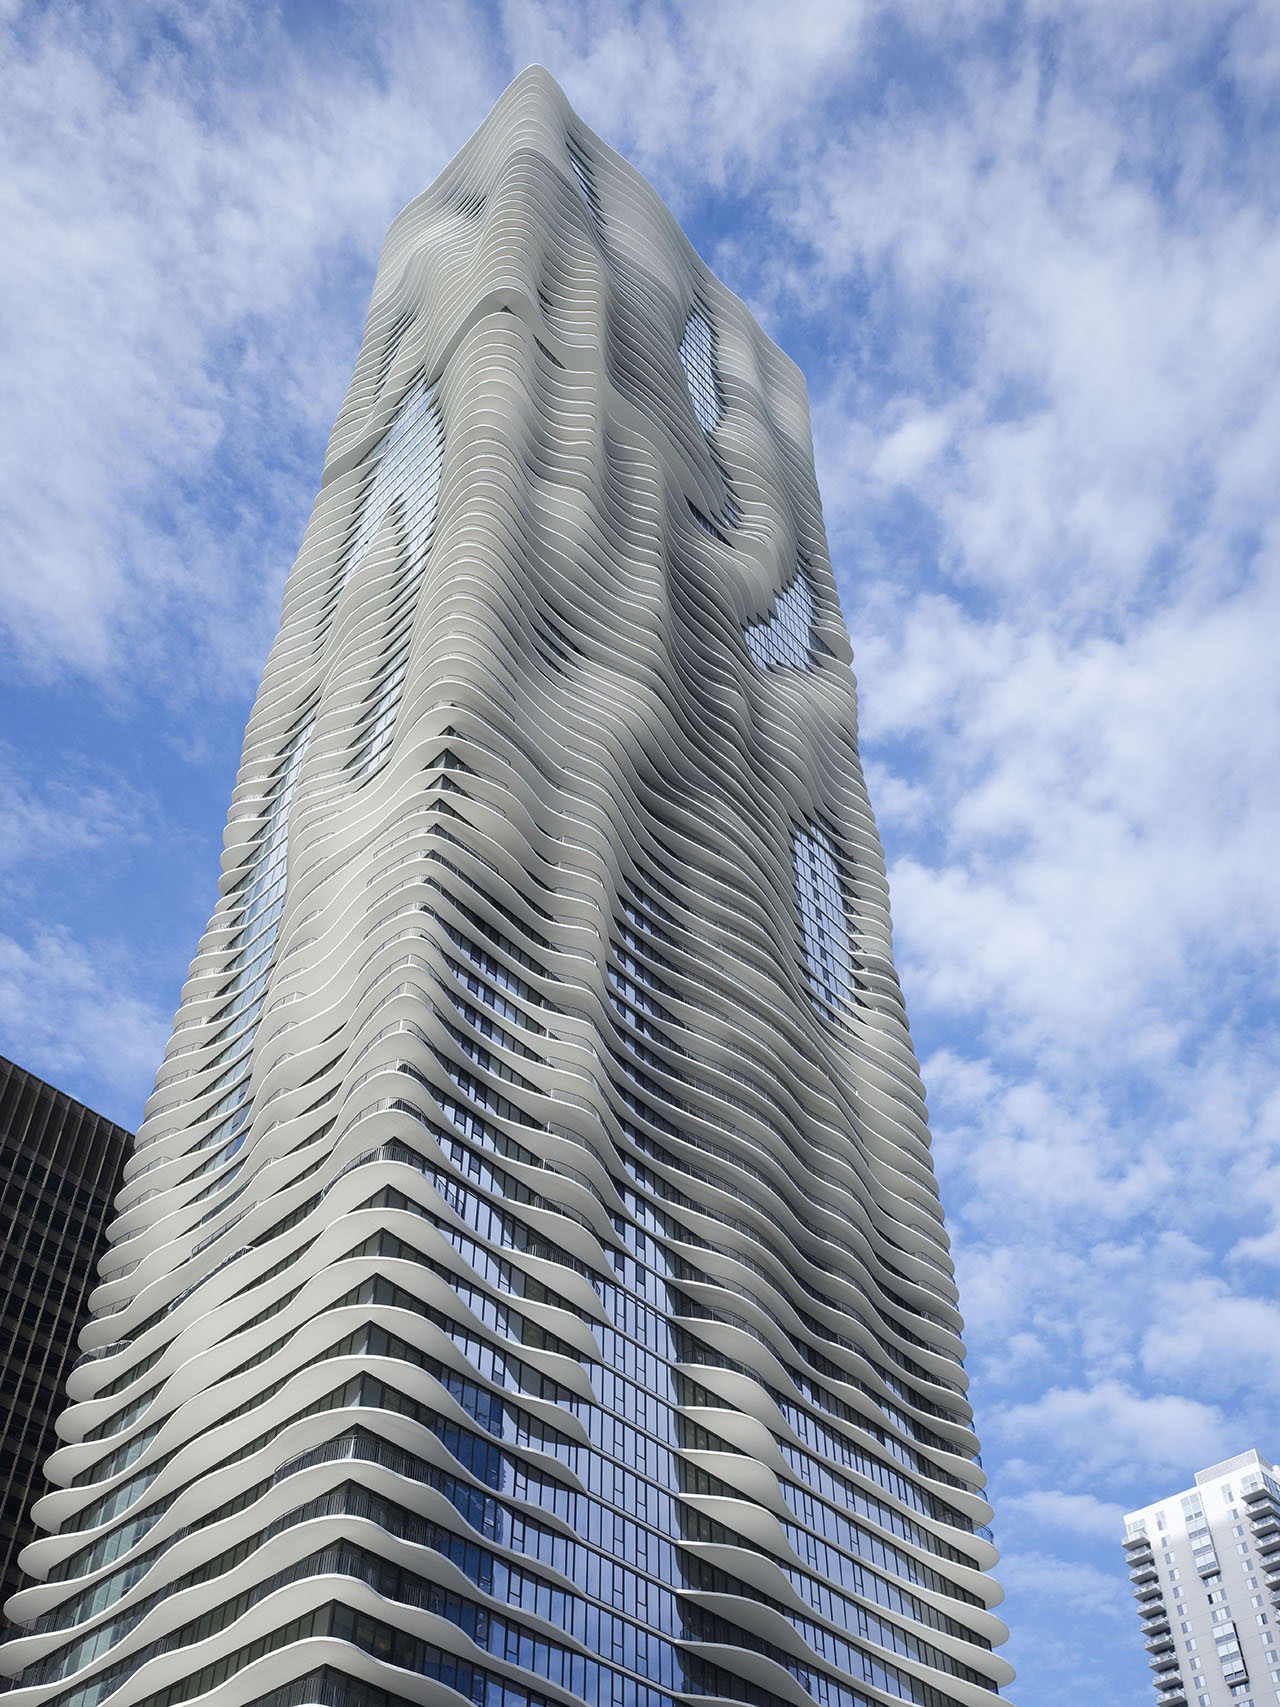 Chicago skyscraper with sinuous shapes